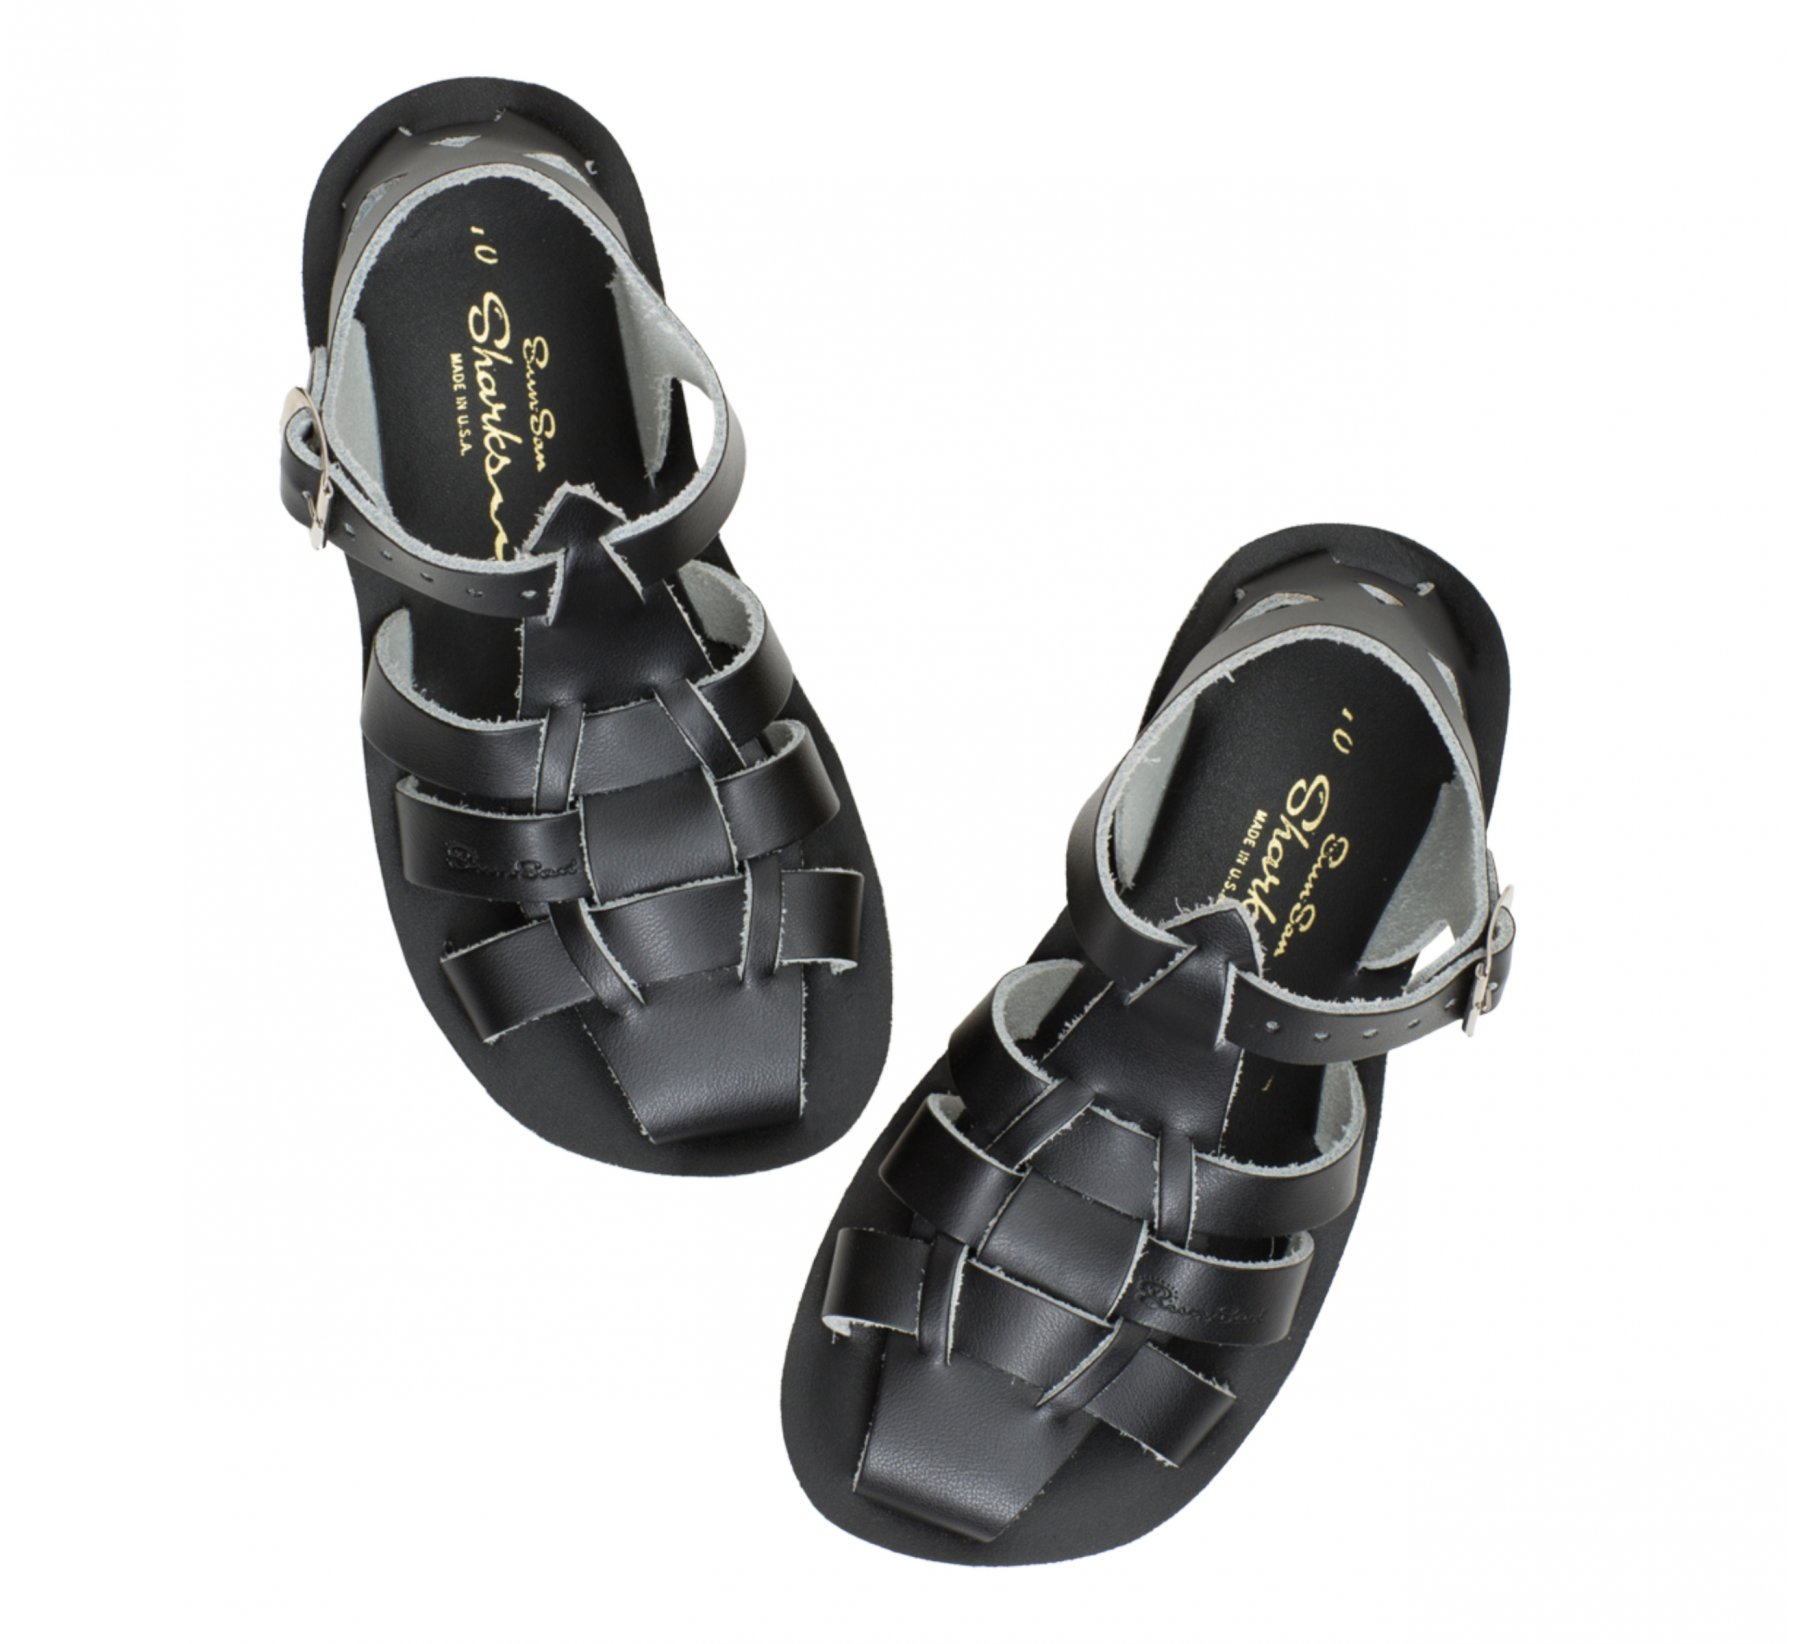 Shark Hitam  - Salt Water Sandals